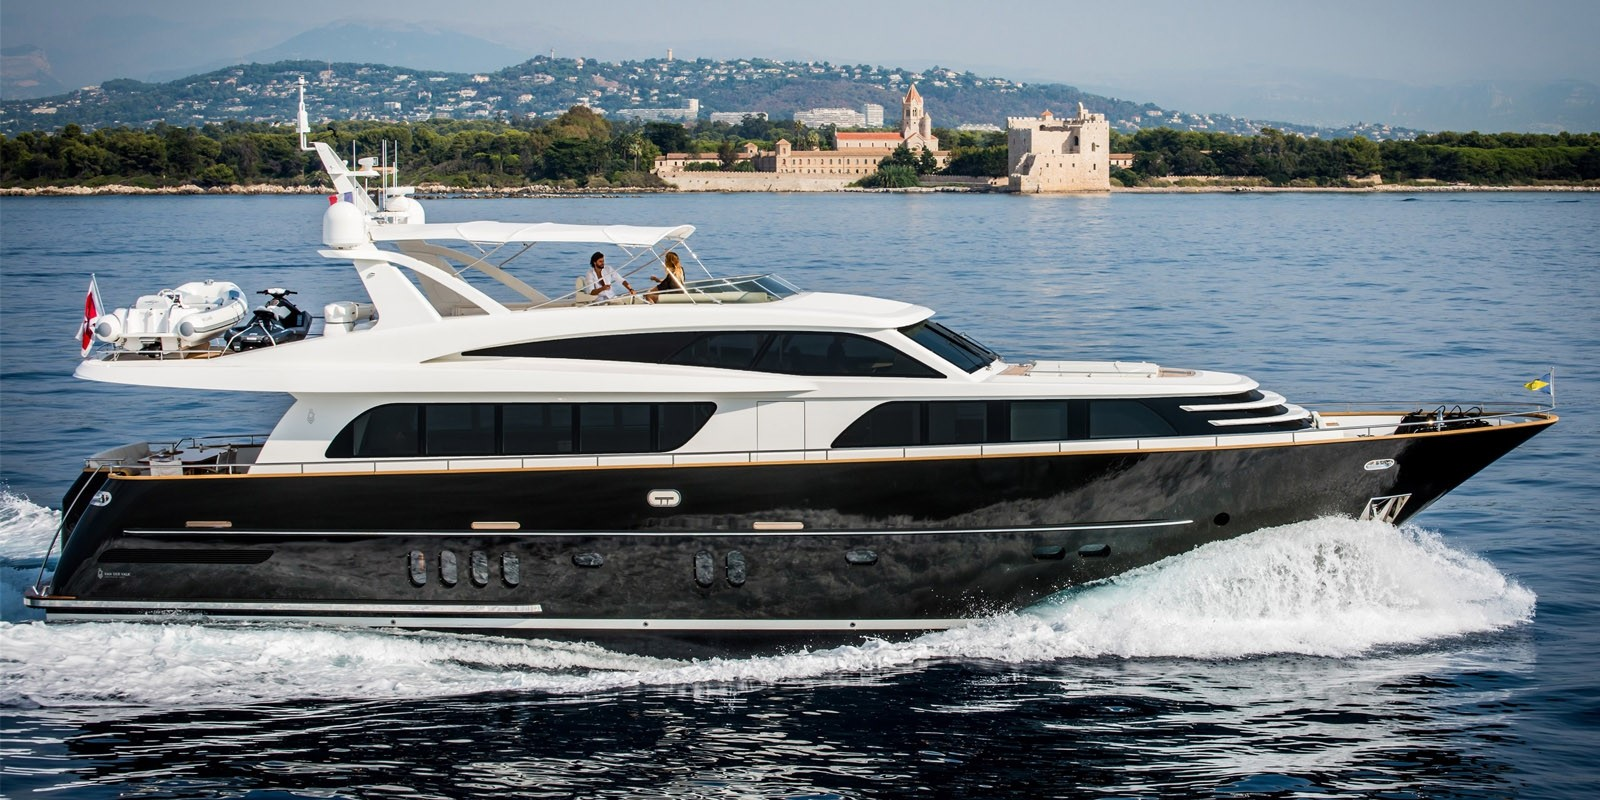 Яхта Van der Valk Raised Pilothouse 82 - фото 10 из 11